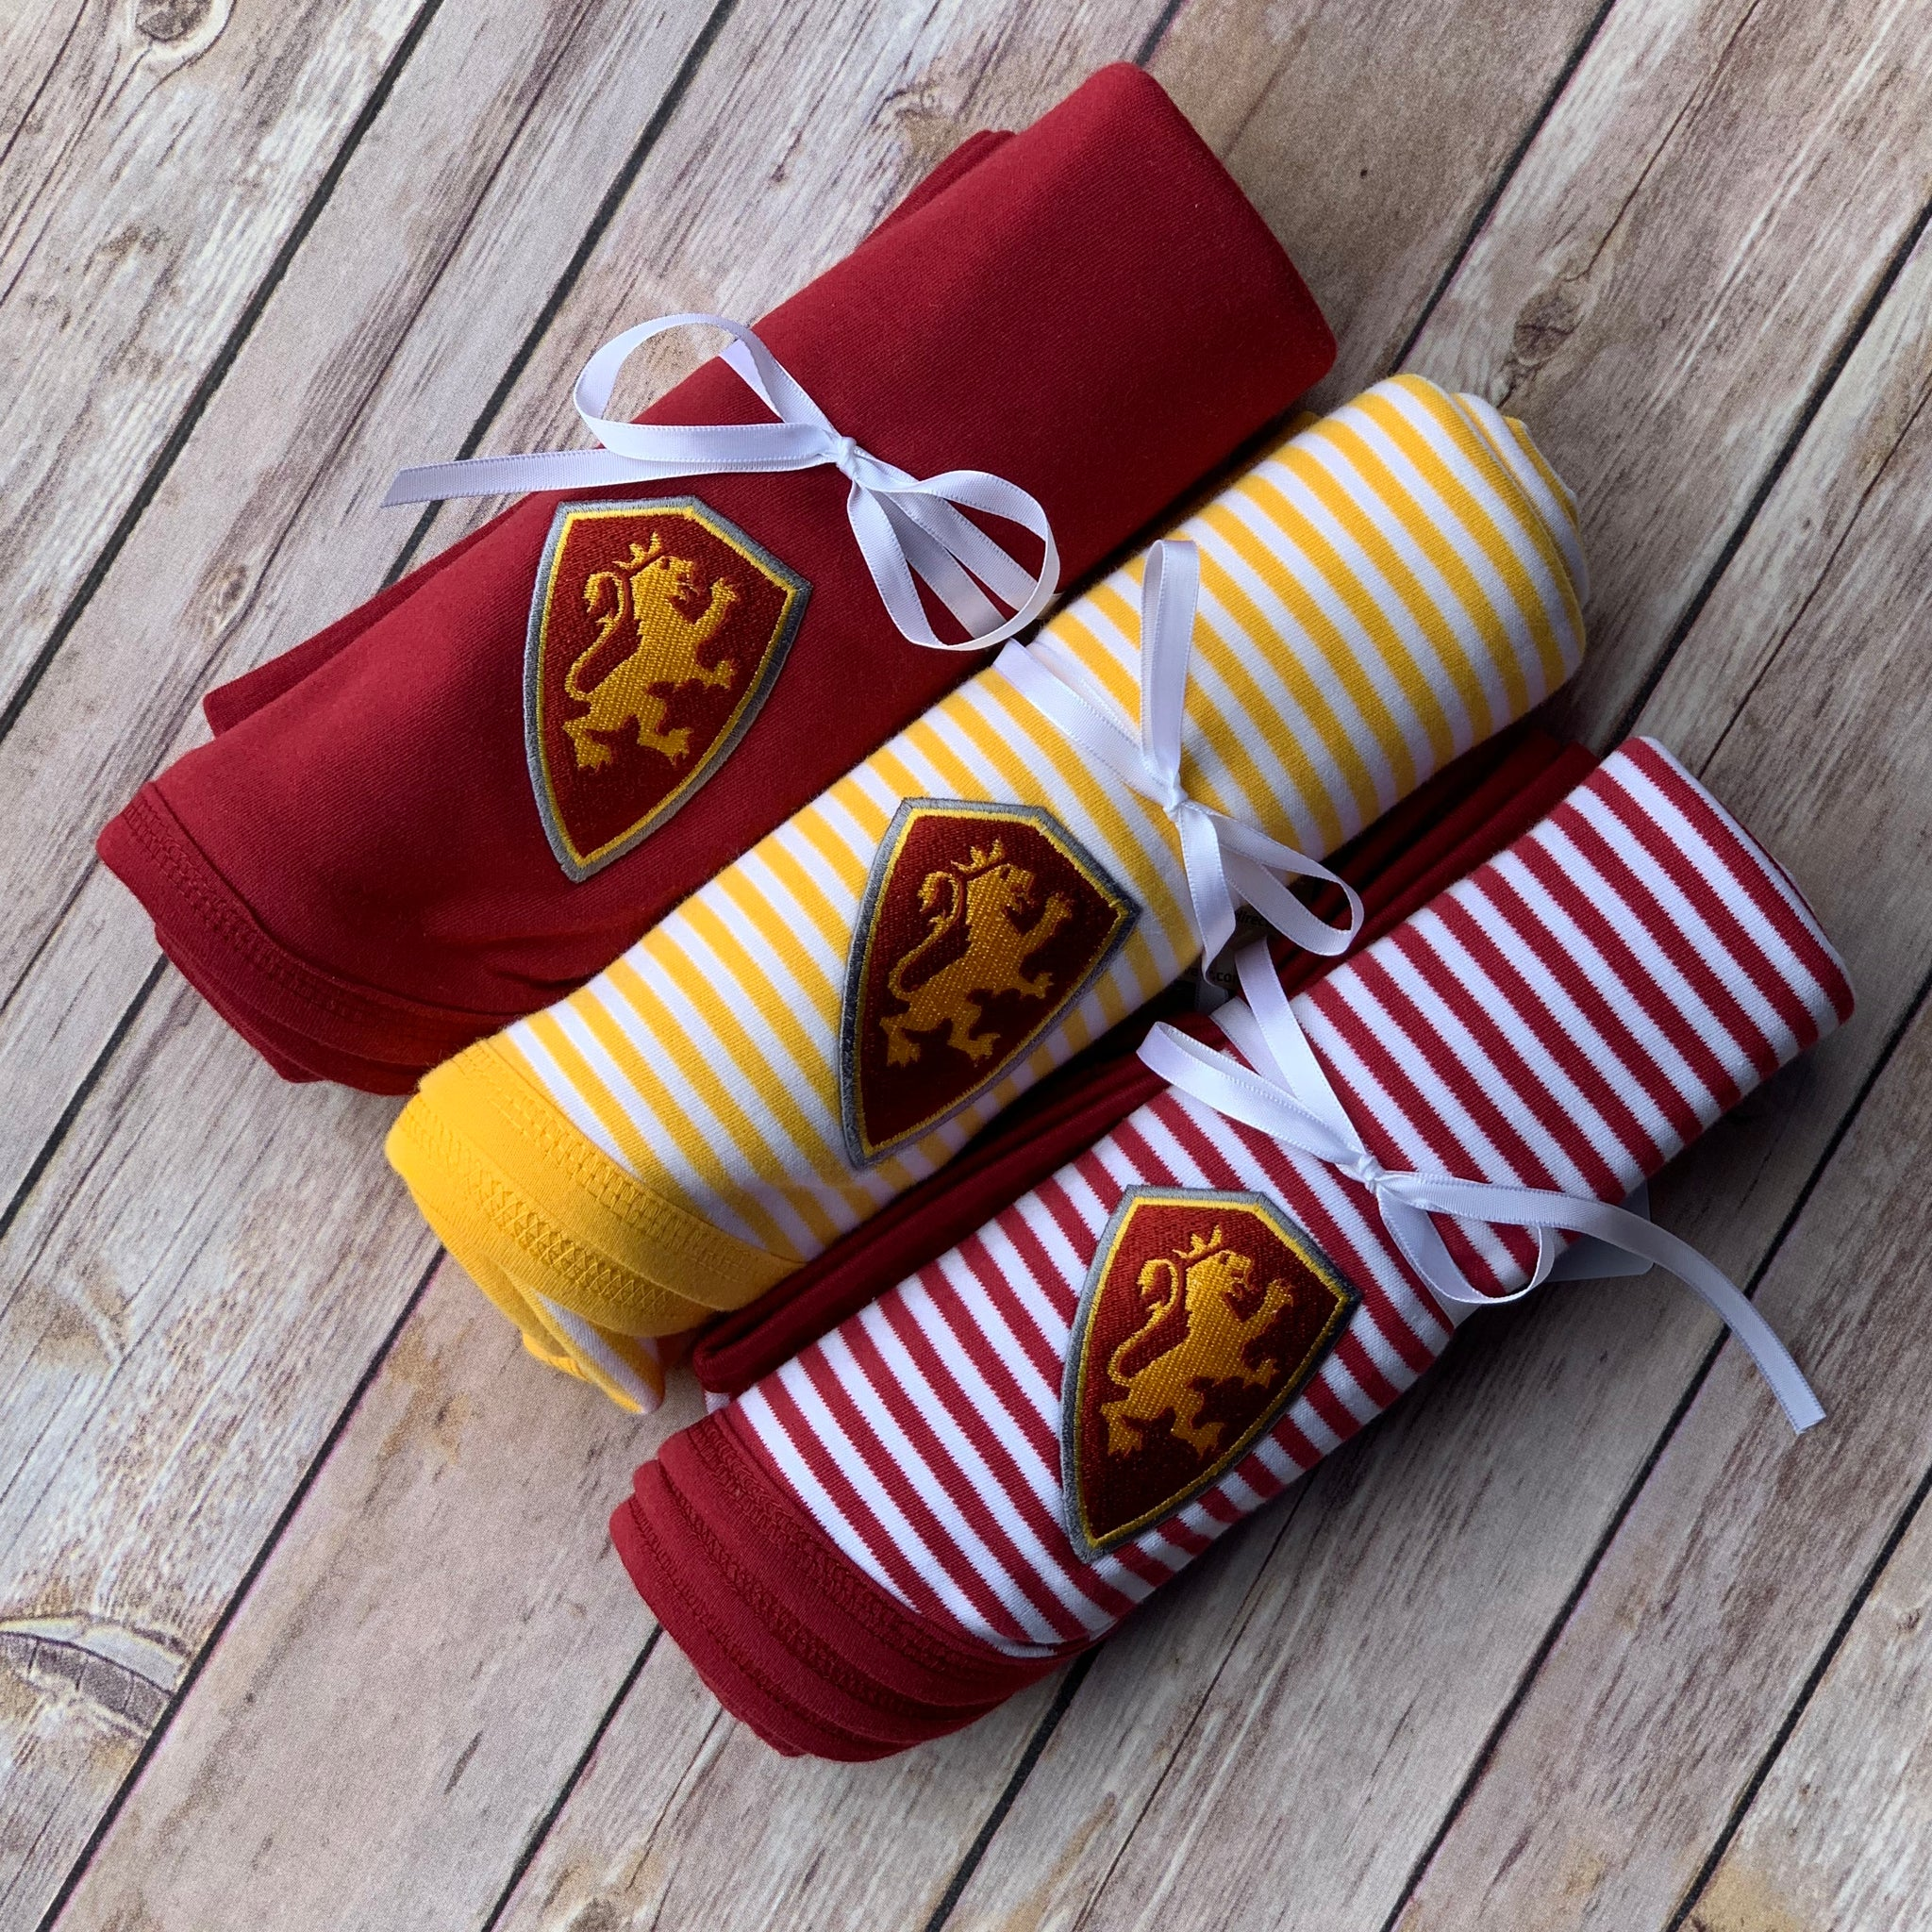 three baby blankets with embroidered yellow and red shield patch on each. one blanket is solid red, the other has yellow and white stripes and the last has red and white stripes